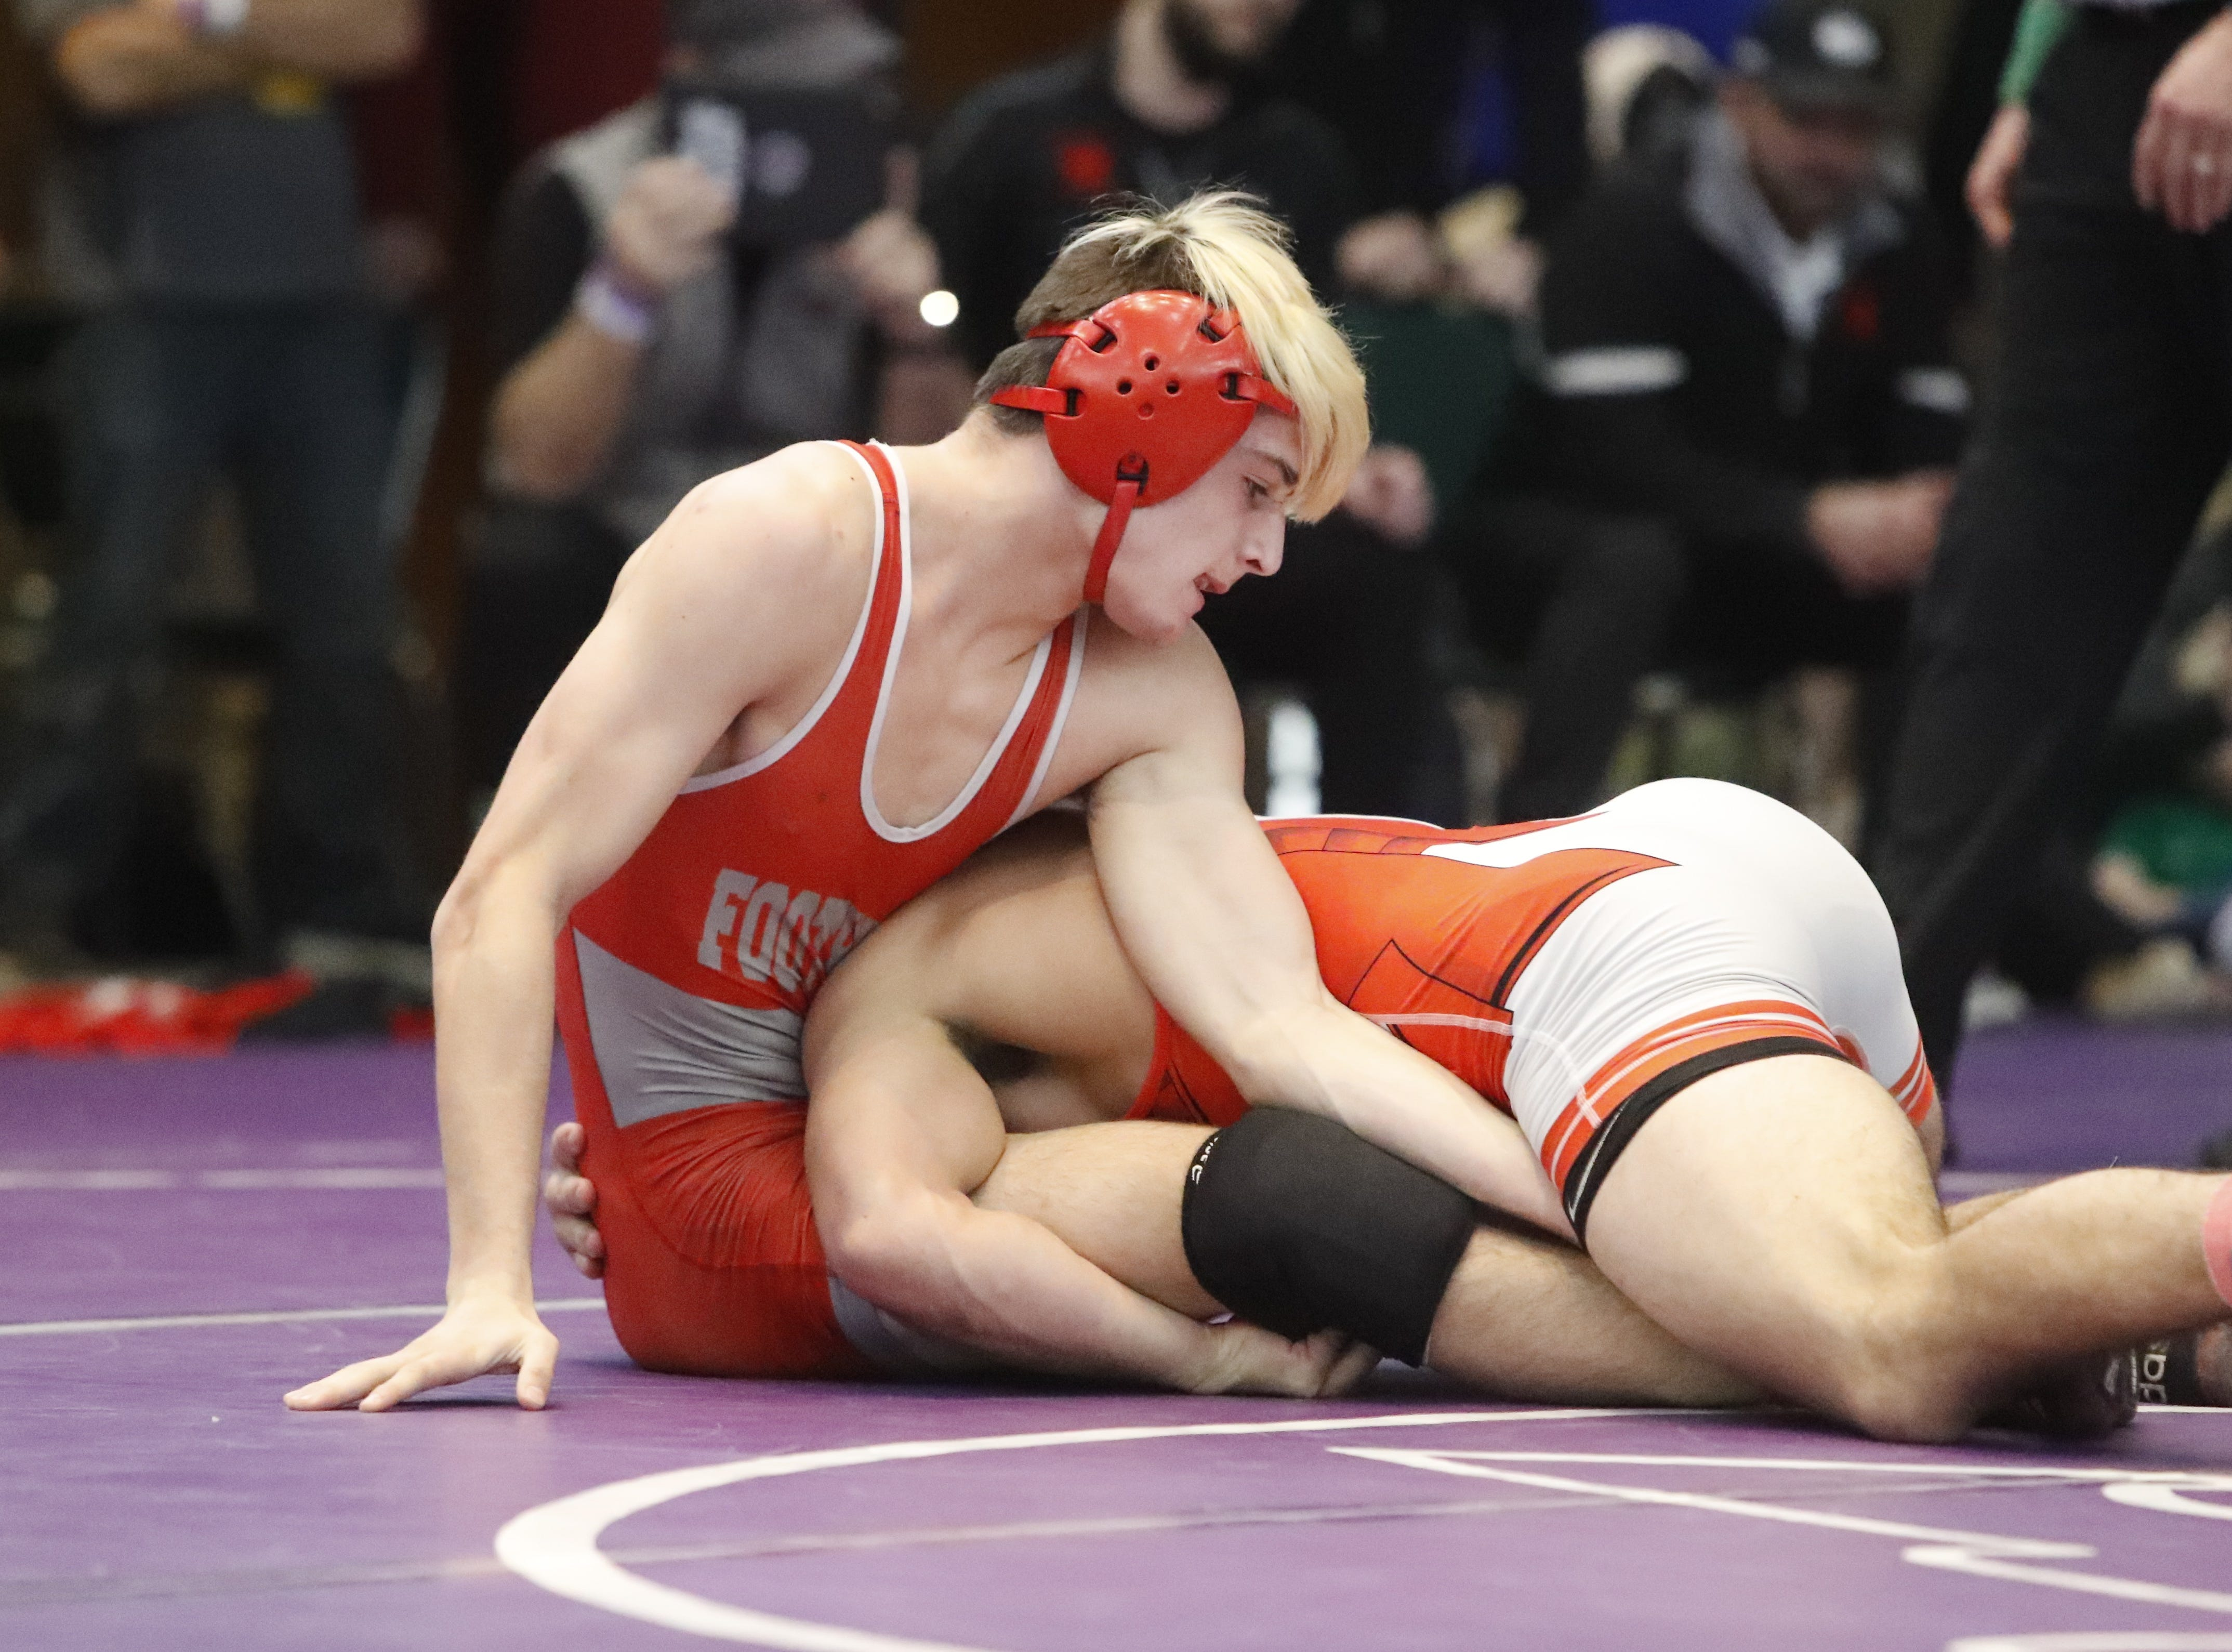 Foothill's Corey Williford (left) battles for the 152-pound title with JT Stinson of East Nicolaus at the Northern Section championships on Friday, Feb. 15, at the Redding Civic Auditorium.